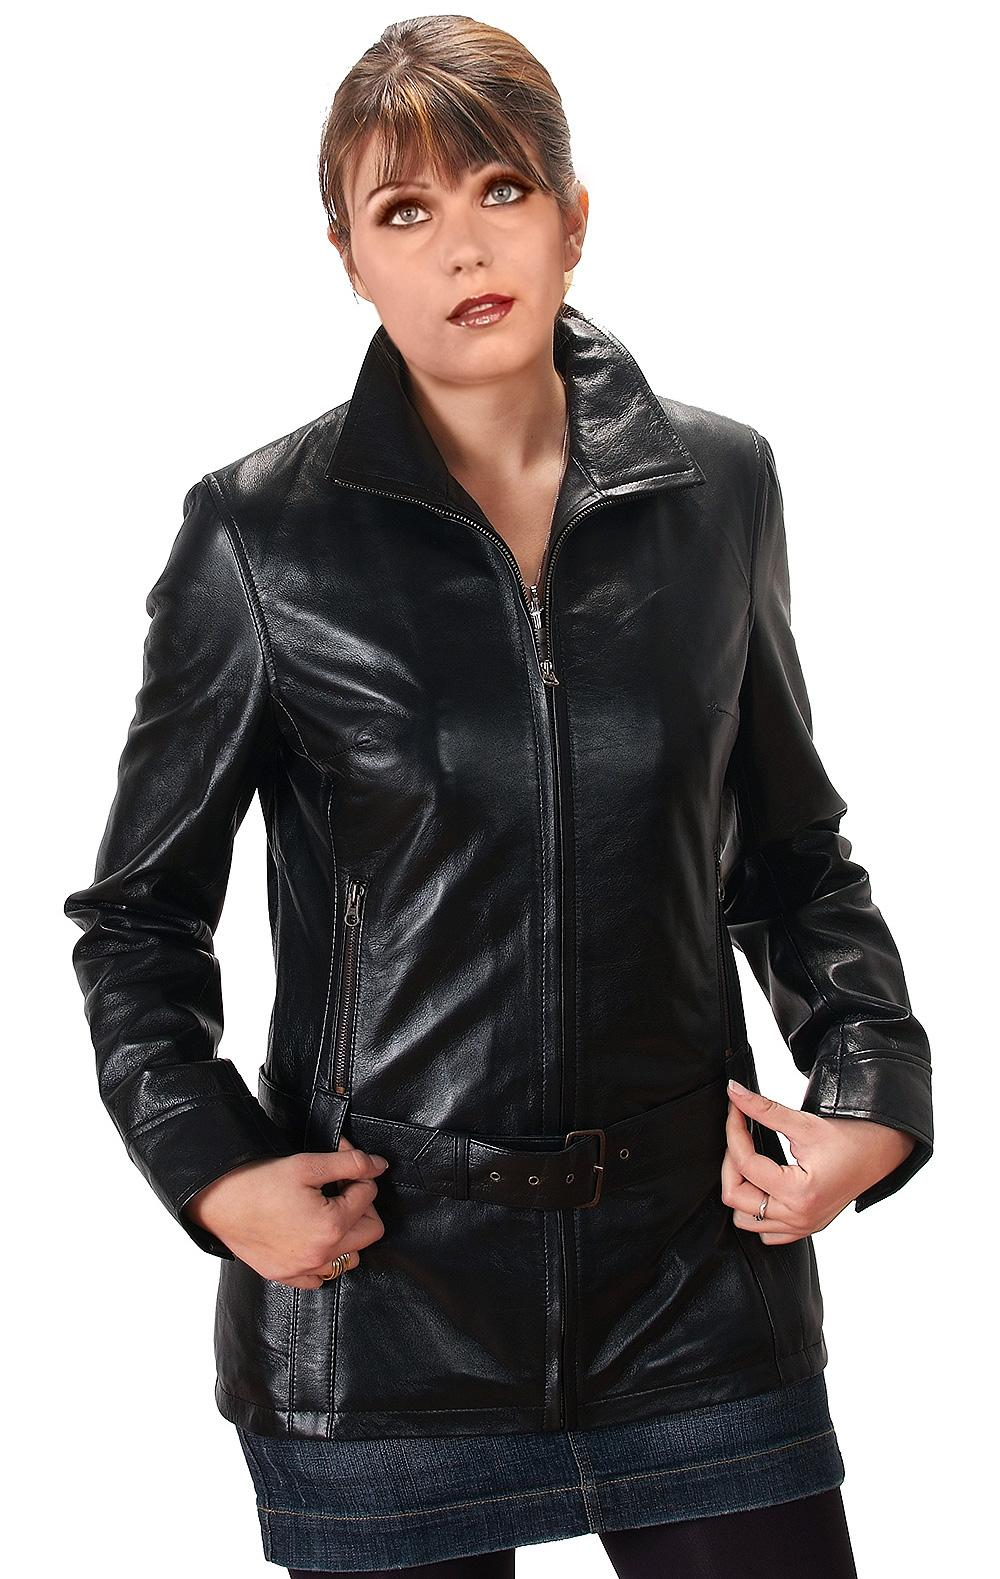 Leather jackets in fashion 52